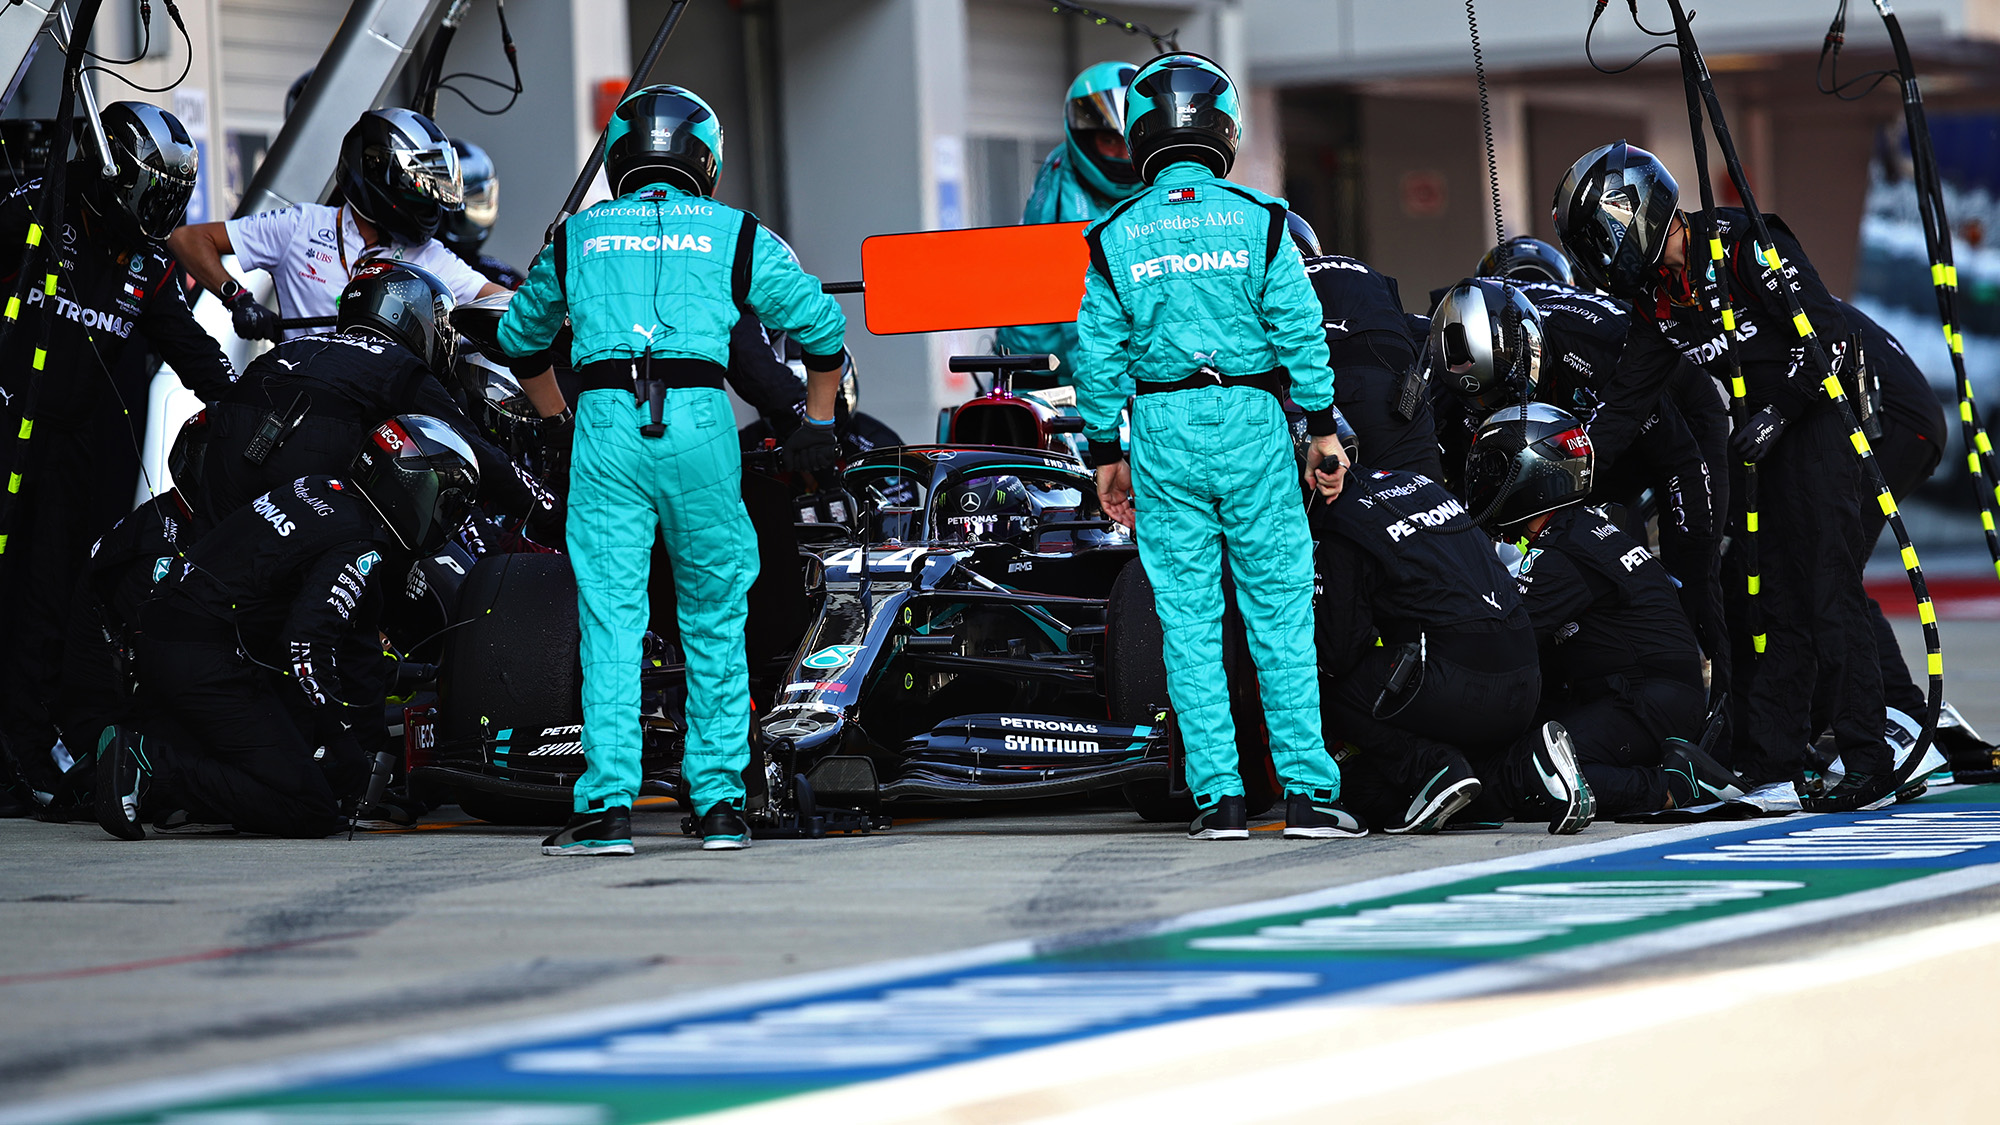 Lewis Hamilton in the pits at Sochi durin g the 2020 f1 Russian Grand Prix